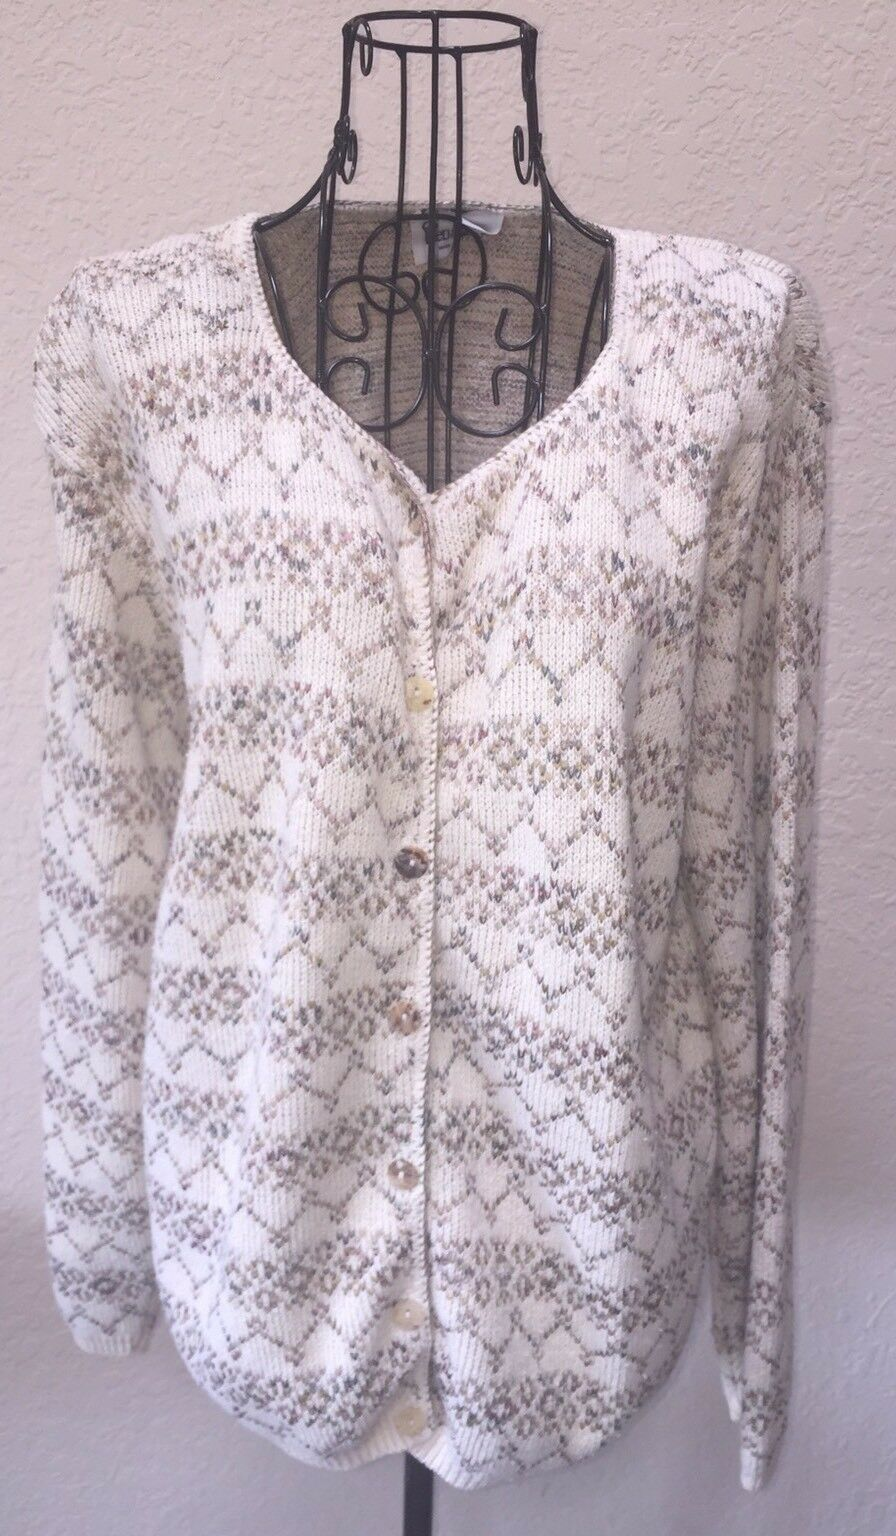 Reba pink Sweater Women's  Ivory Green bluee Button Front Size Large